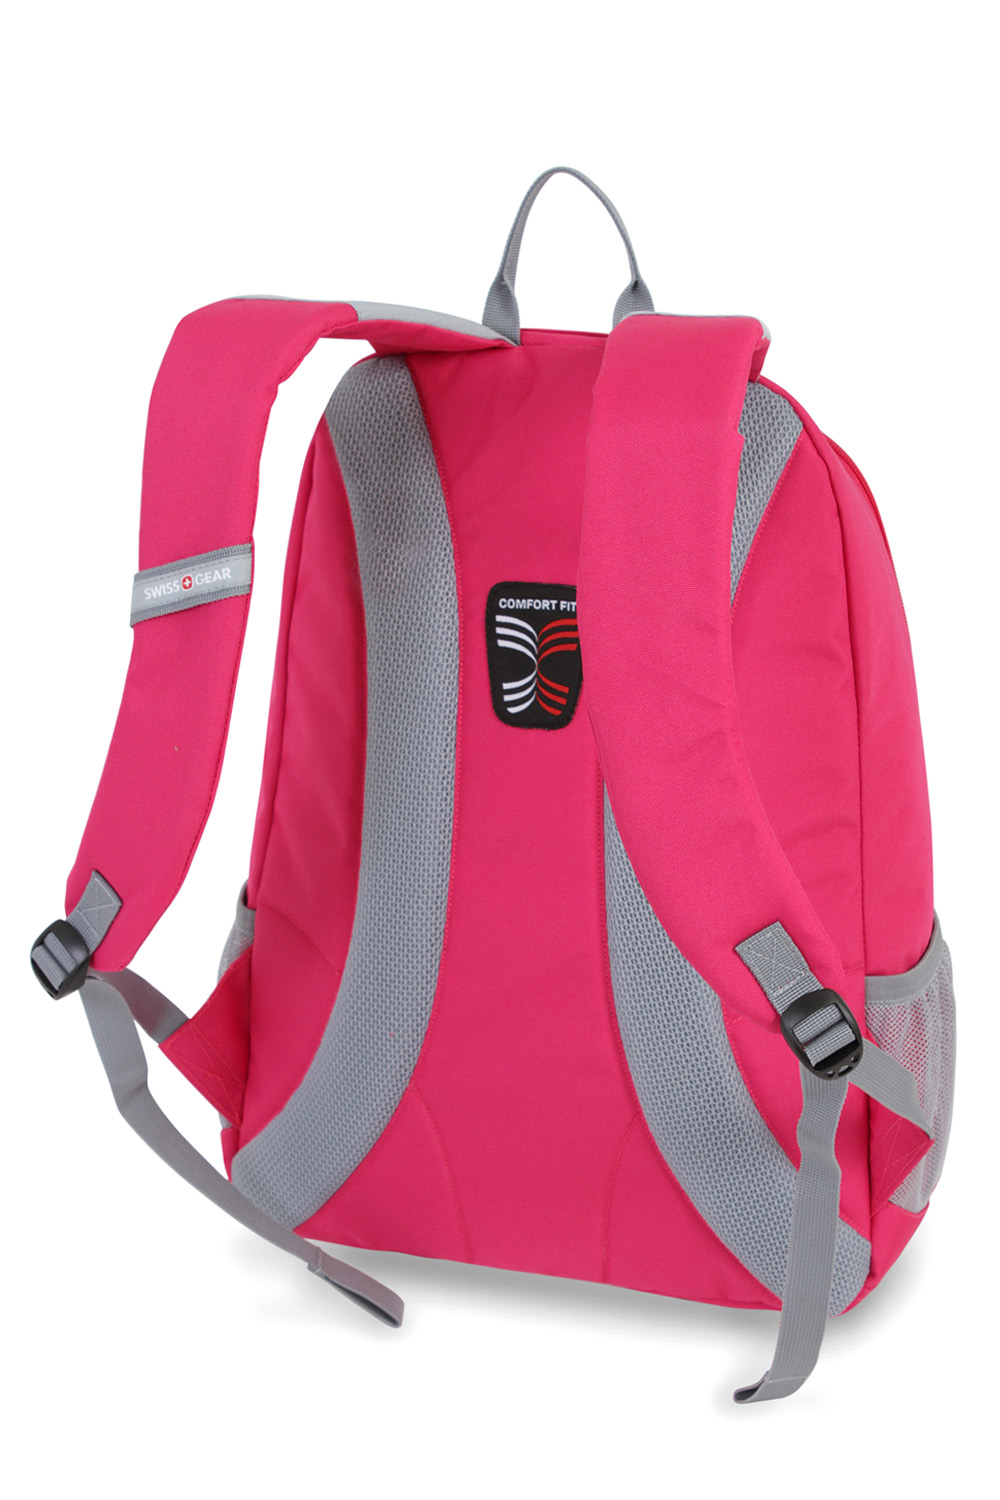 SWISSGEAR 6917 Backpack - Hot Pink